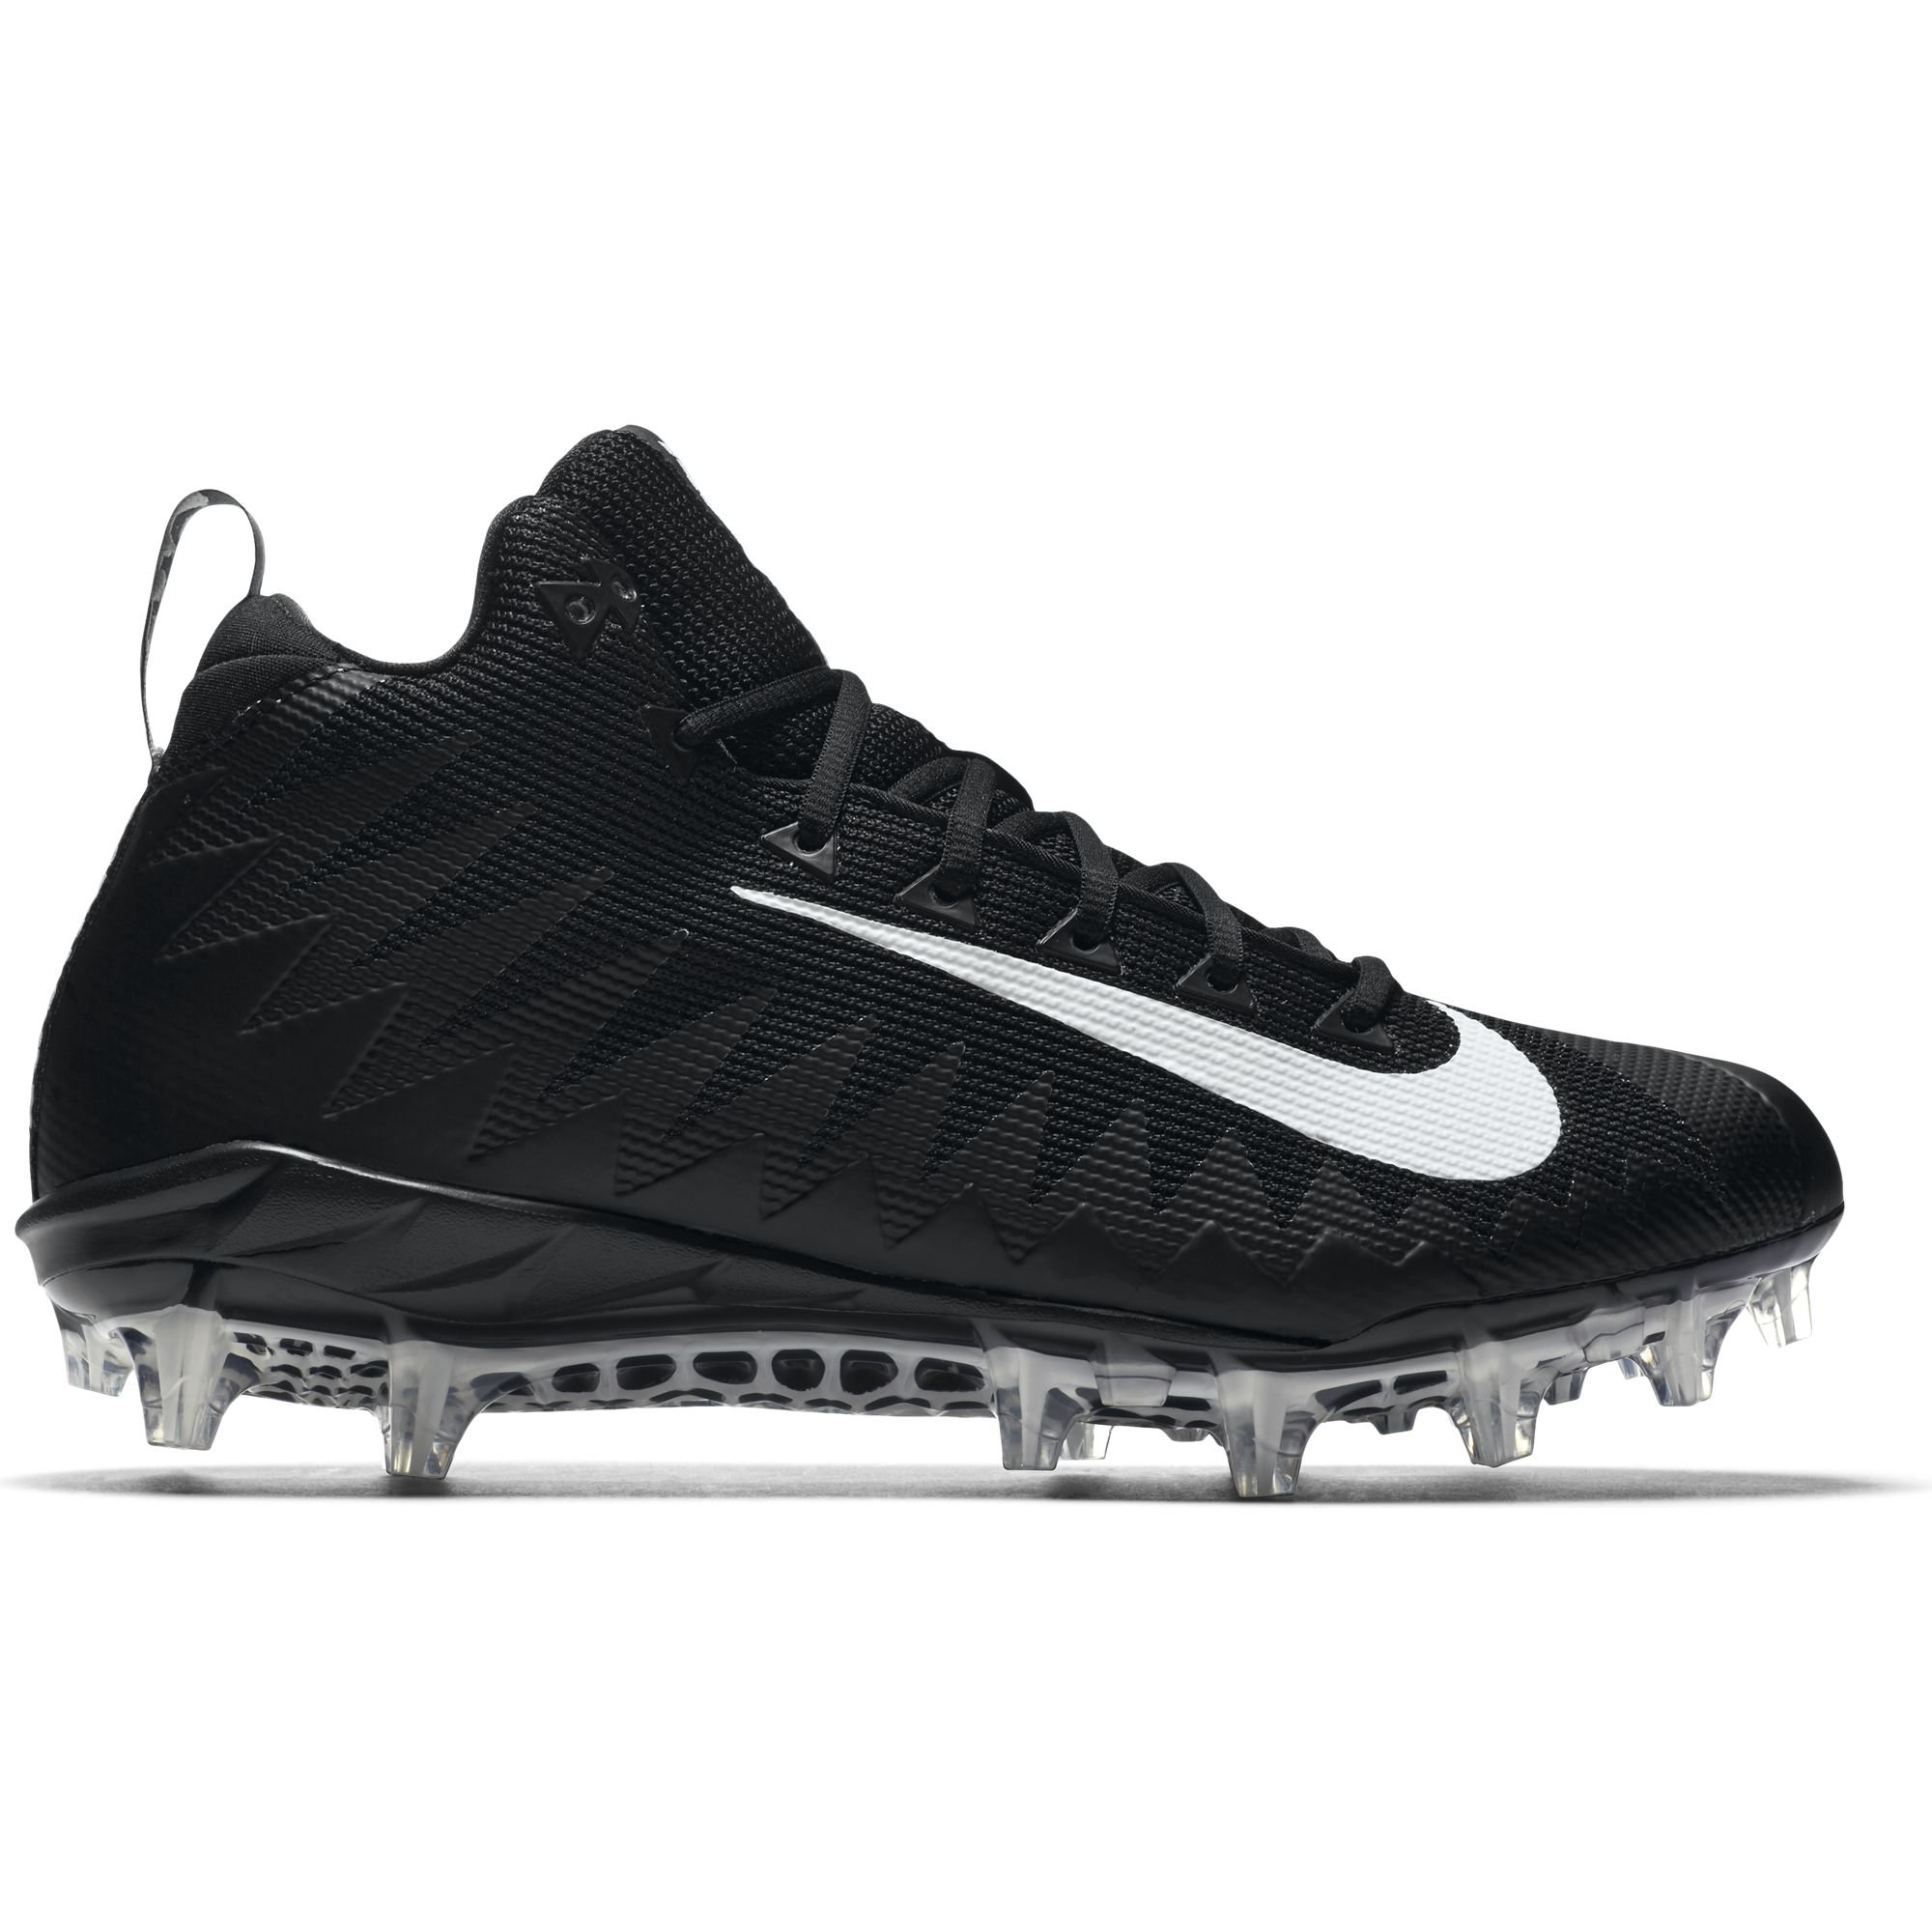 NIKE Men's Alpha Menace Pro Mid Football Cleat Black/White Size 11.5 M US by NIKE